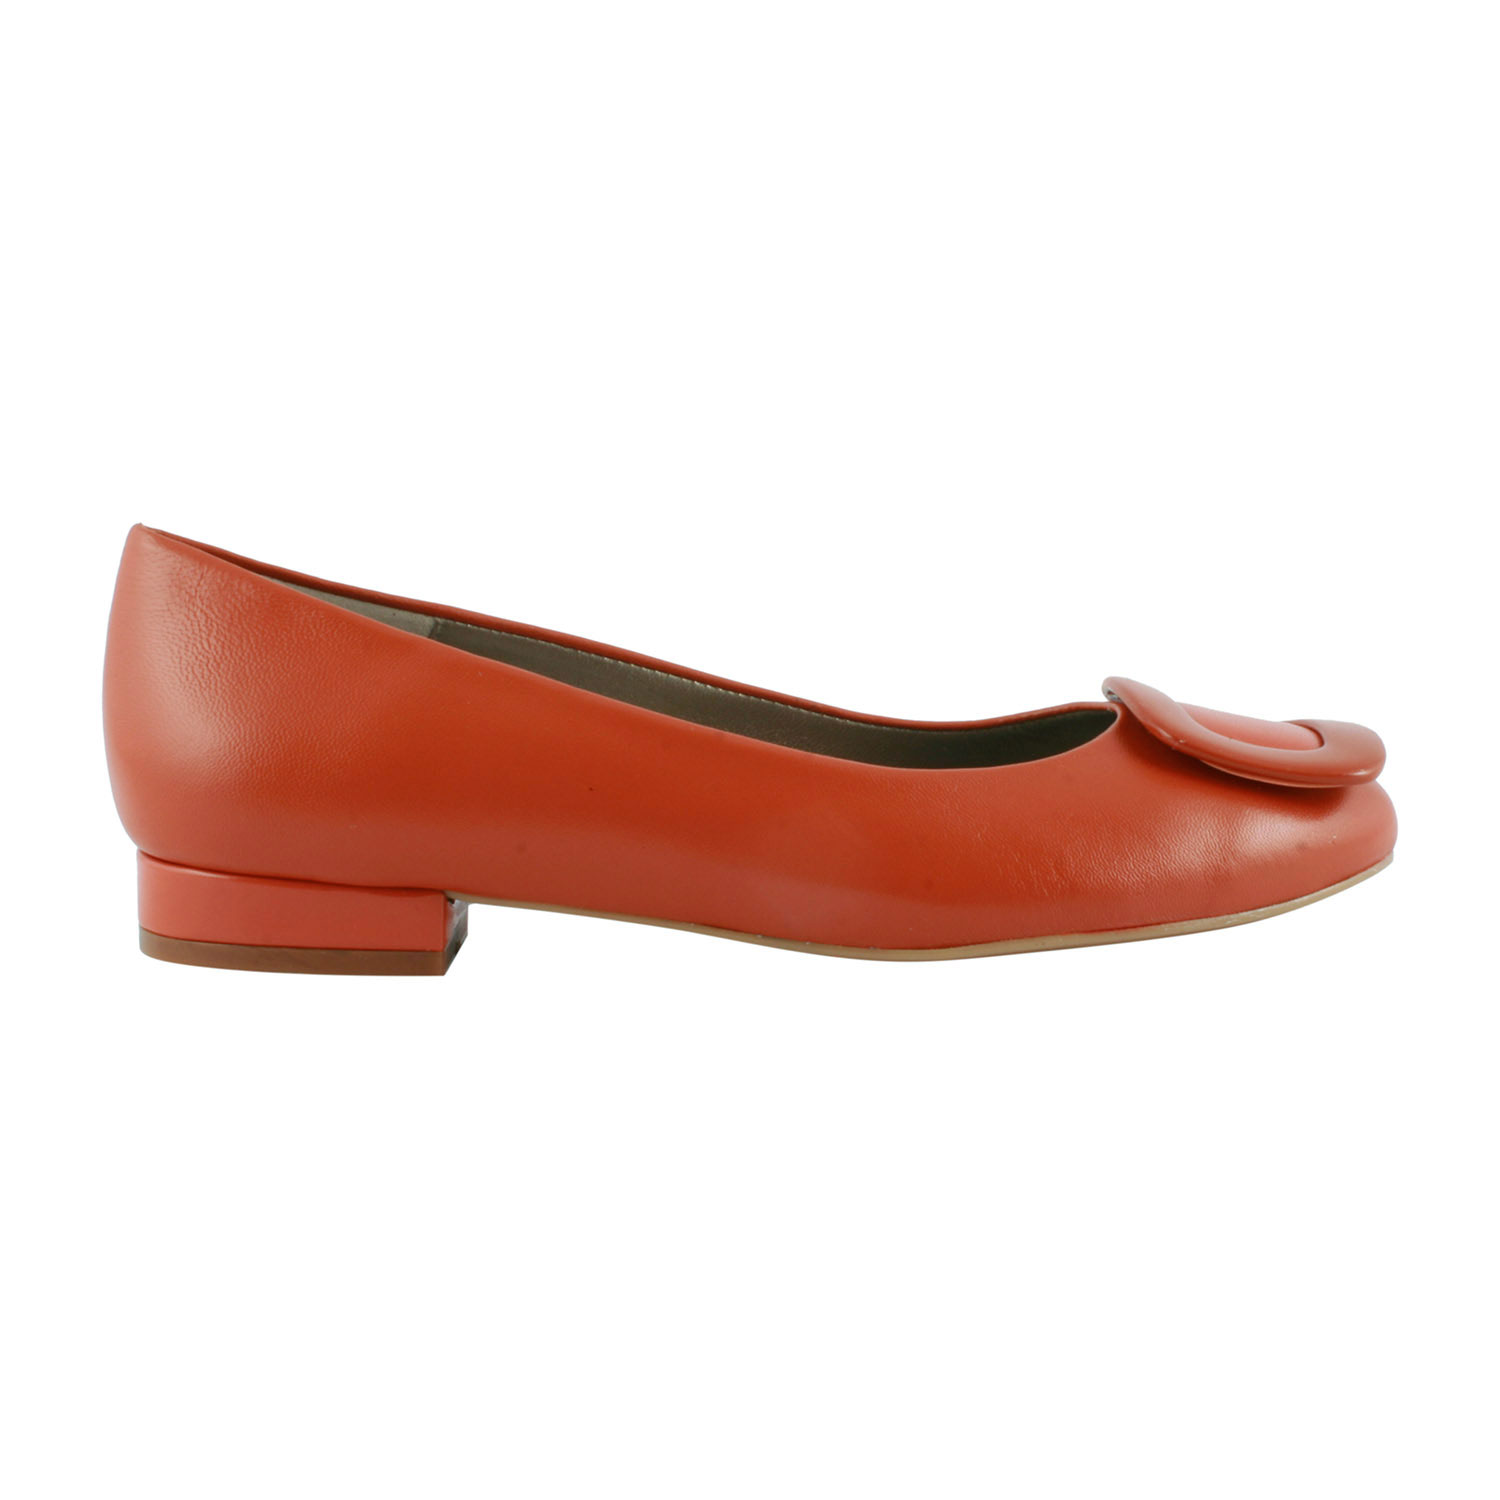 Ballerine-Cuir-Orange-Cardinal